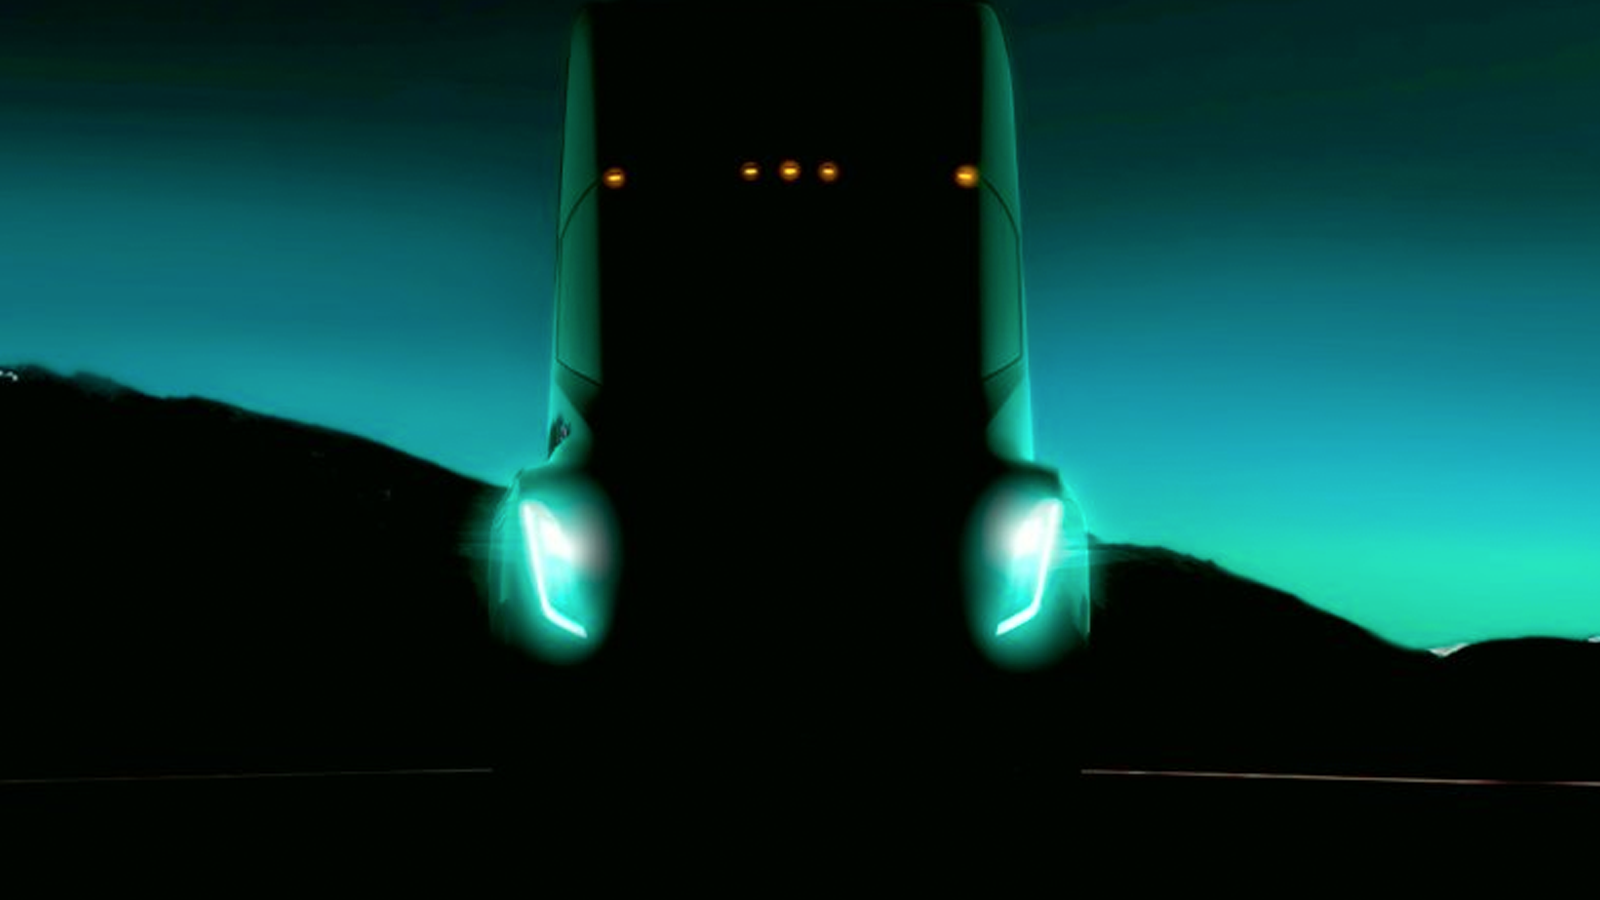 Tesla developing self-driving electric truck